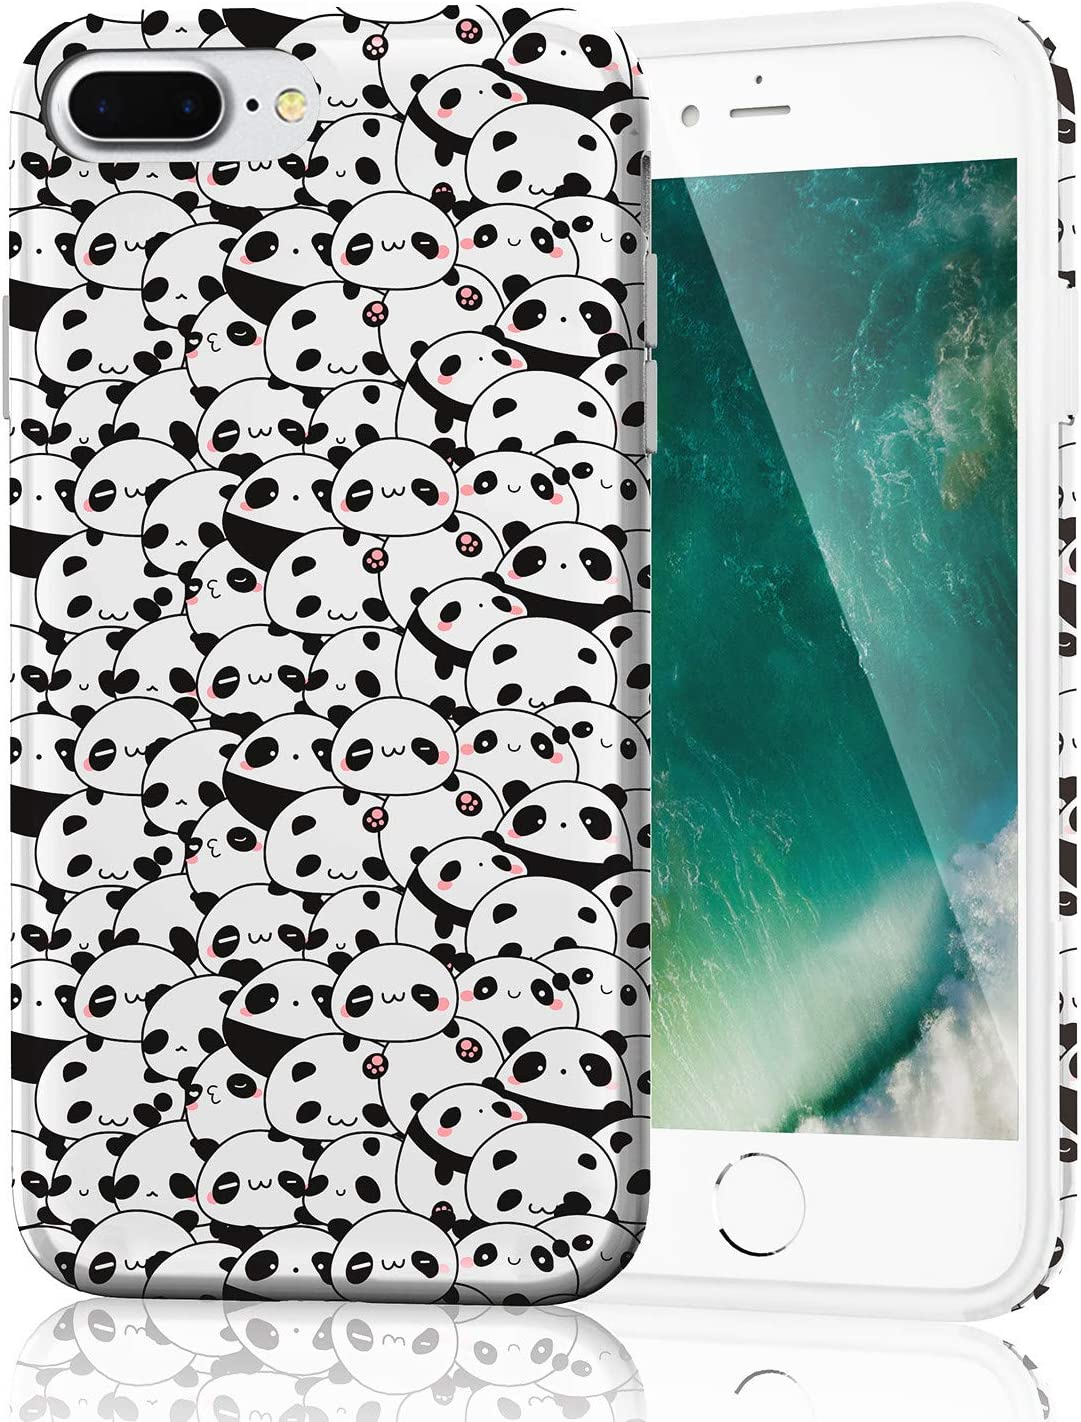 Cute Panda Case for iPhone 8 Plus, Lightweight Thin Flexible Soft TPU Raised Edges Glossy Rubber Silicone Protective Phone Cover for iPhone 7 Plus and iPhone 8 Plus